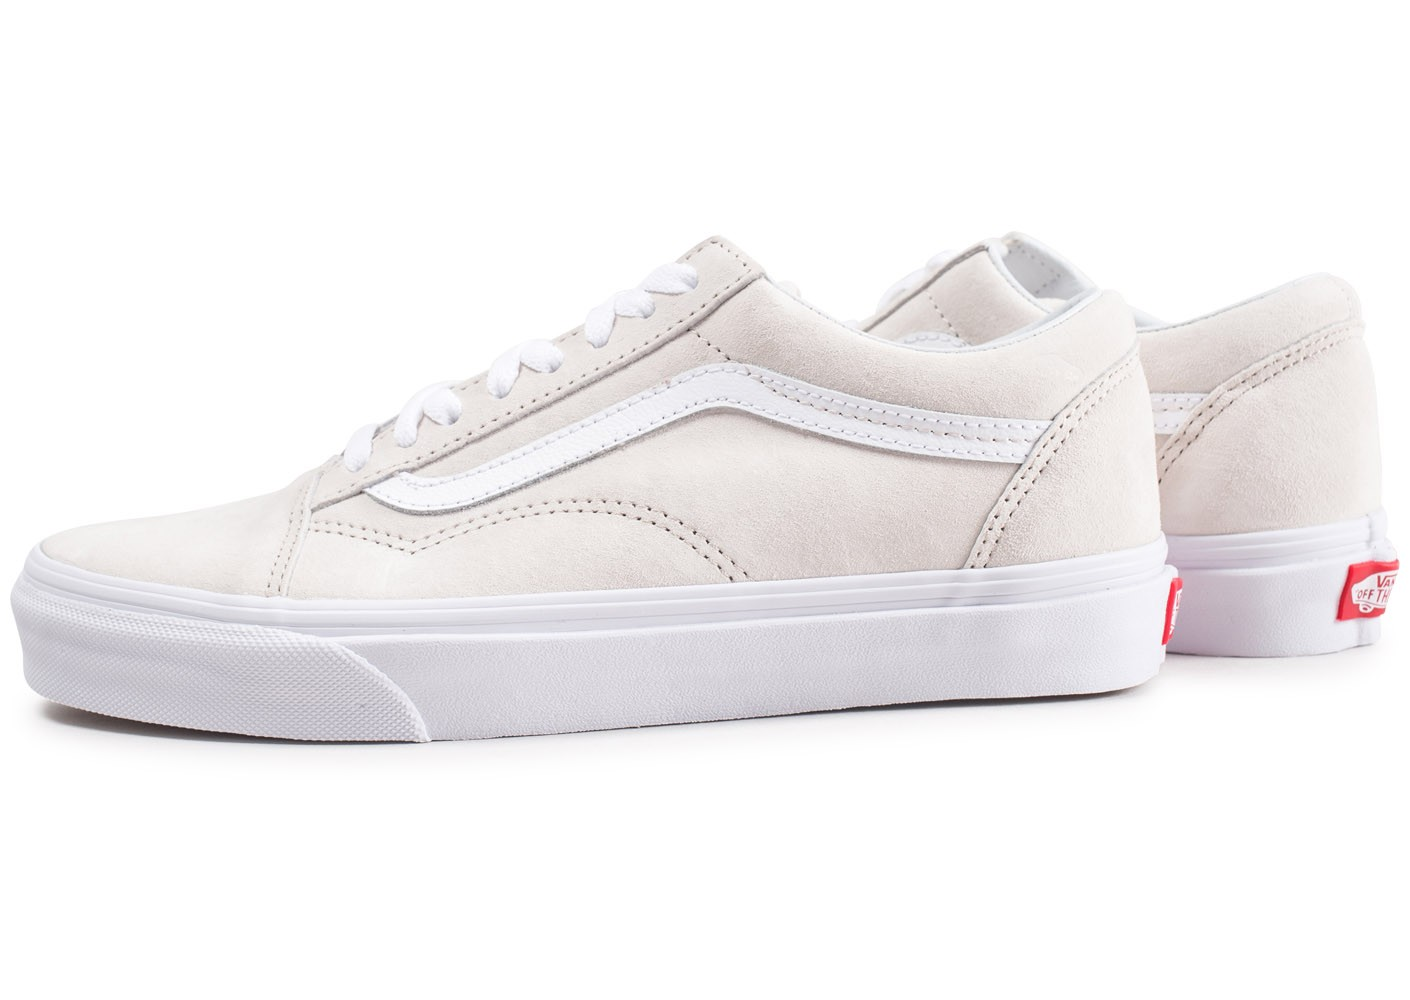 Chaussures en daim Old Skool | Marron | Vans